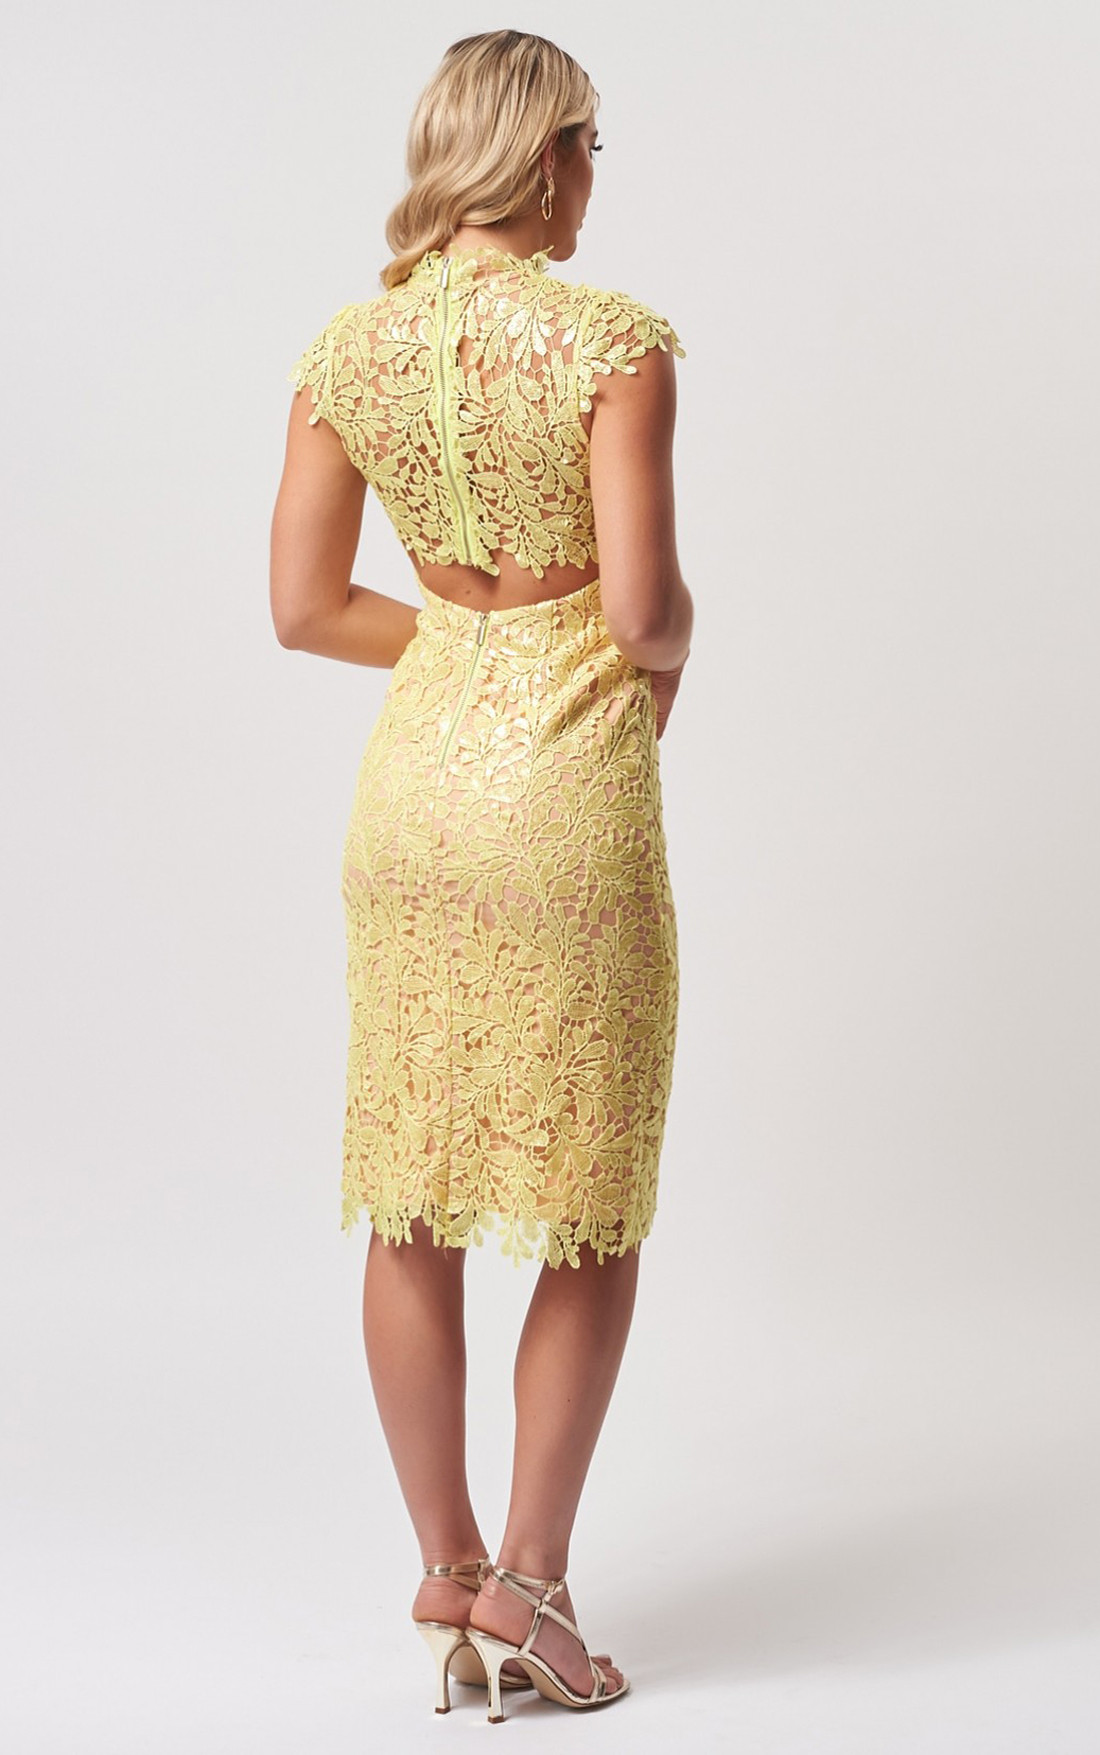 Forever Unique - Rivet Lime Sequin Floral Lace Embroidered Midi Dress (MN201153)